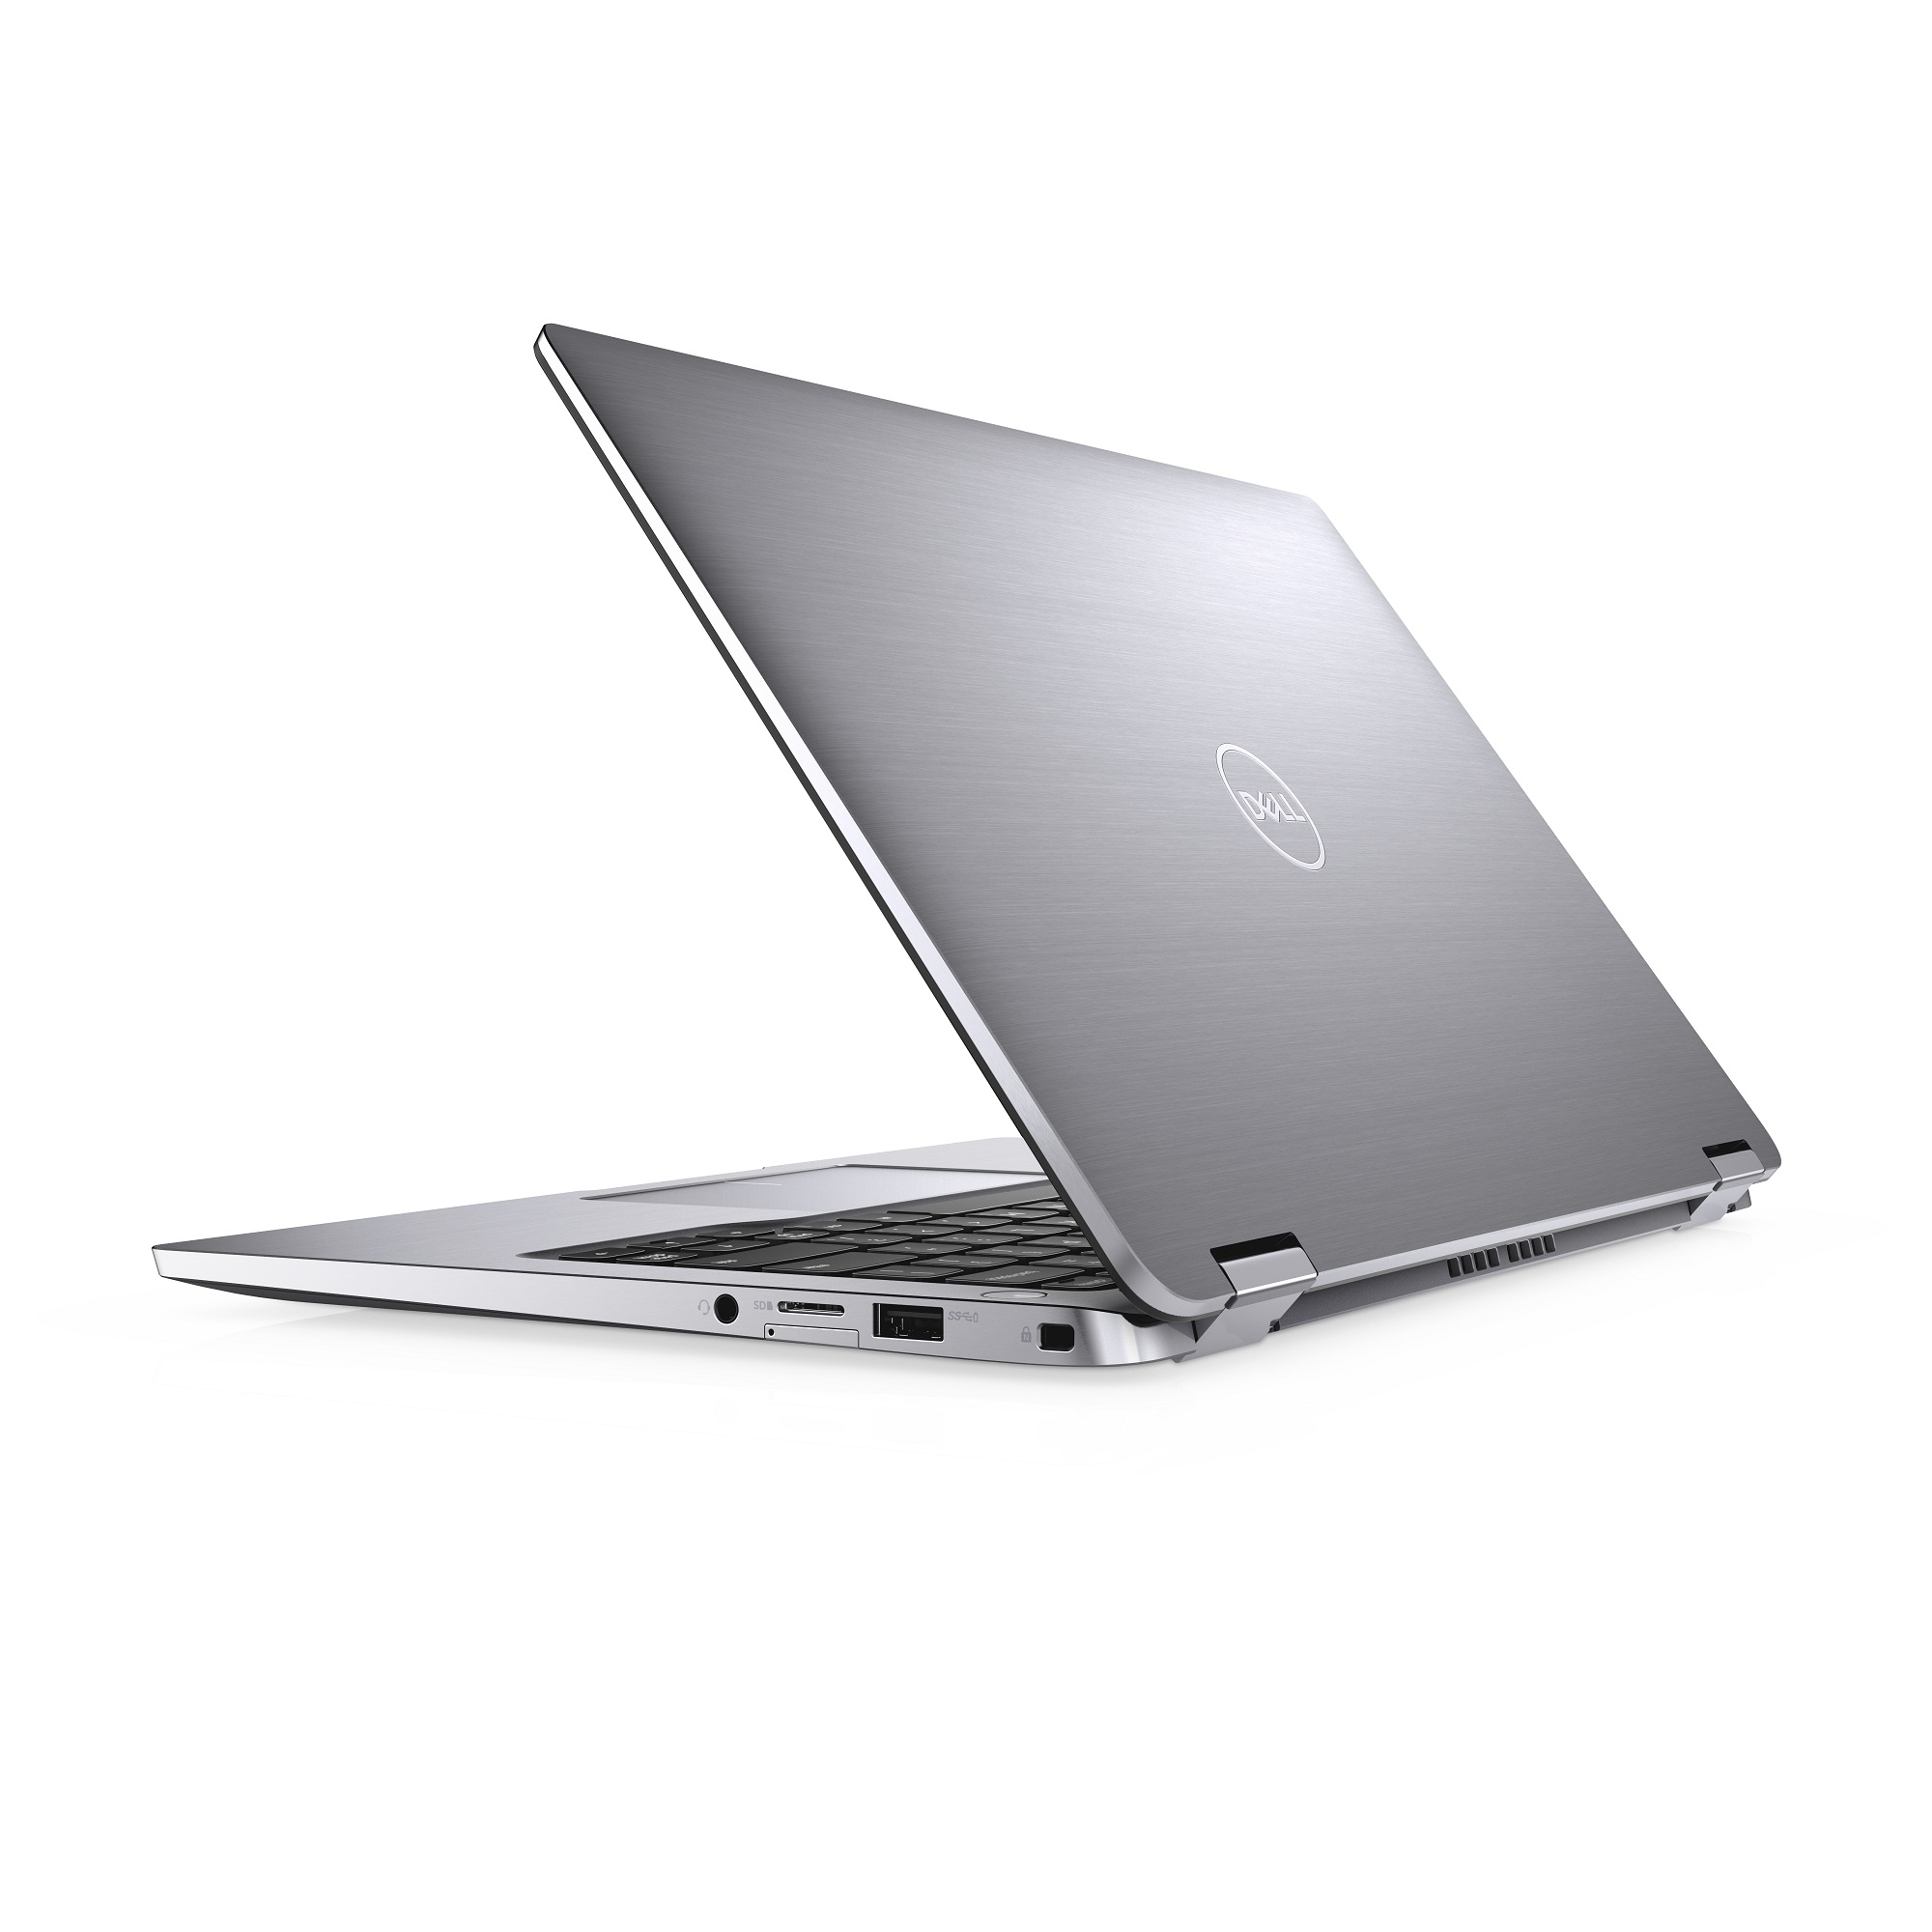 Laptop DELL Latitude 9410 2in1 14 FHD Touch i7-10610U 16GB 256GB SSD FPR SCR BK LTE W10P 3YBWOS